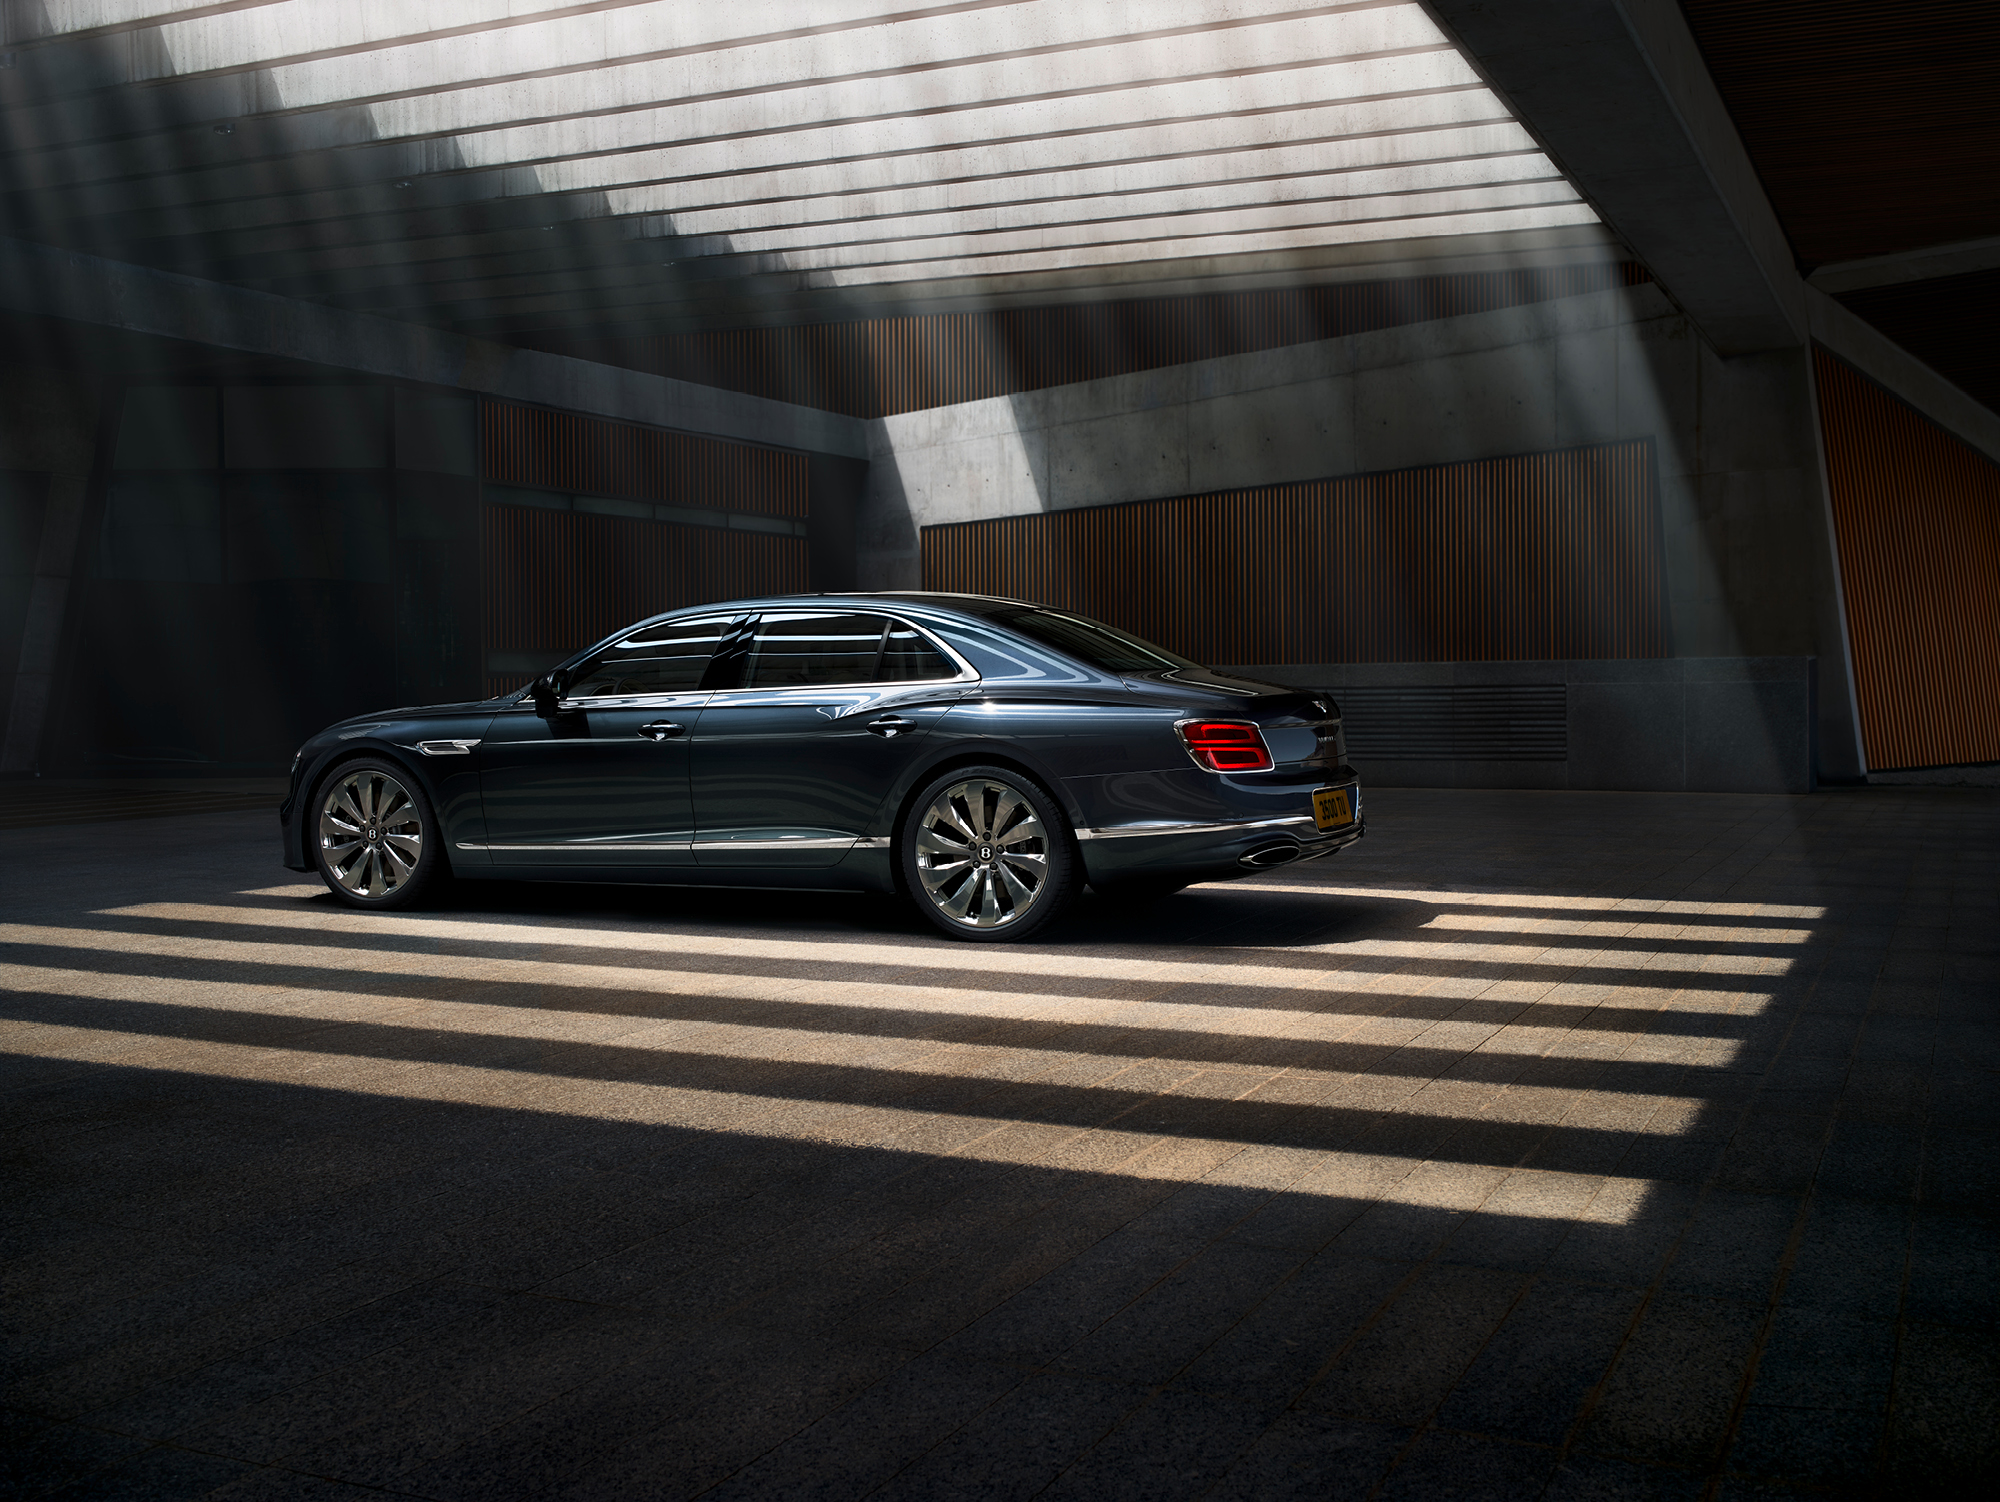 The Bently Flying Spur has all the hallmarks of the luxury marques's sumptuous finishes while harnessing innovative technology and unrivalled power